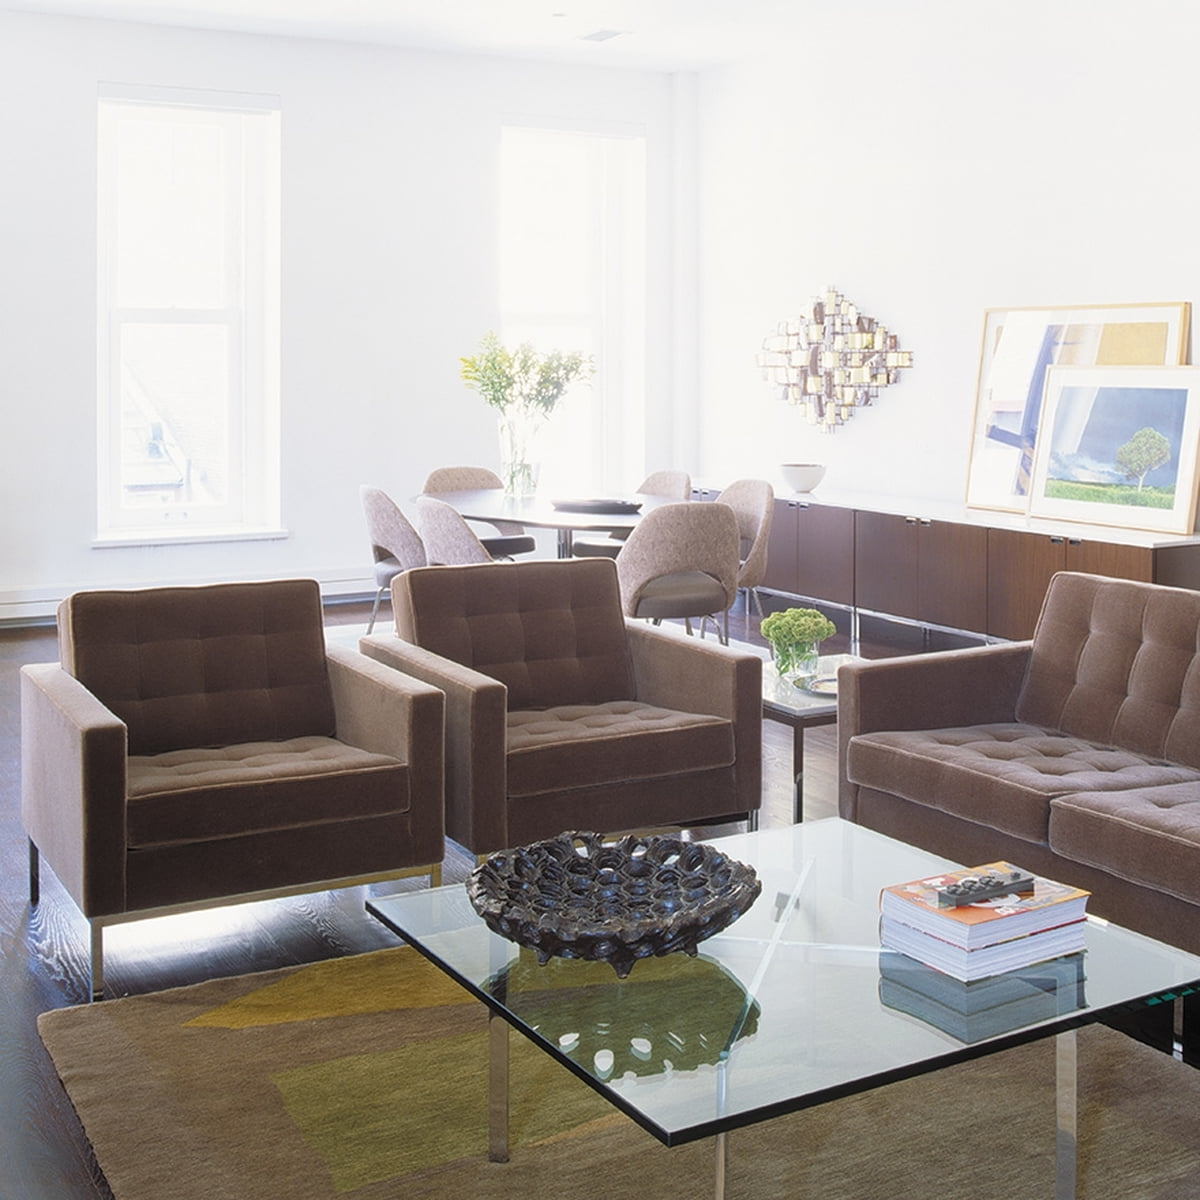 Most Popular Florence Knoll Wood Legs Sofas Throughout Knoll Florence 2 Seats Sofa In The Shop (View 12 of 20)